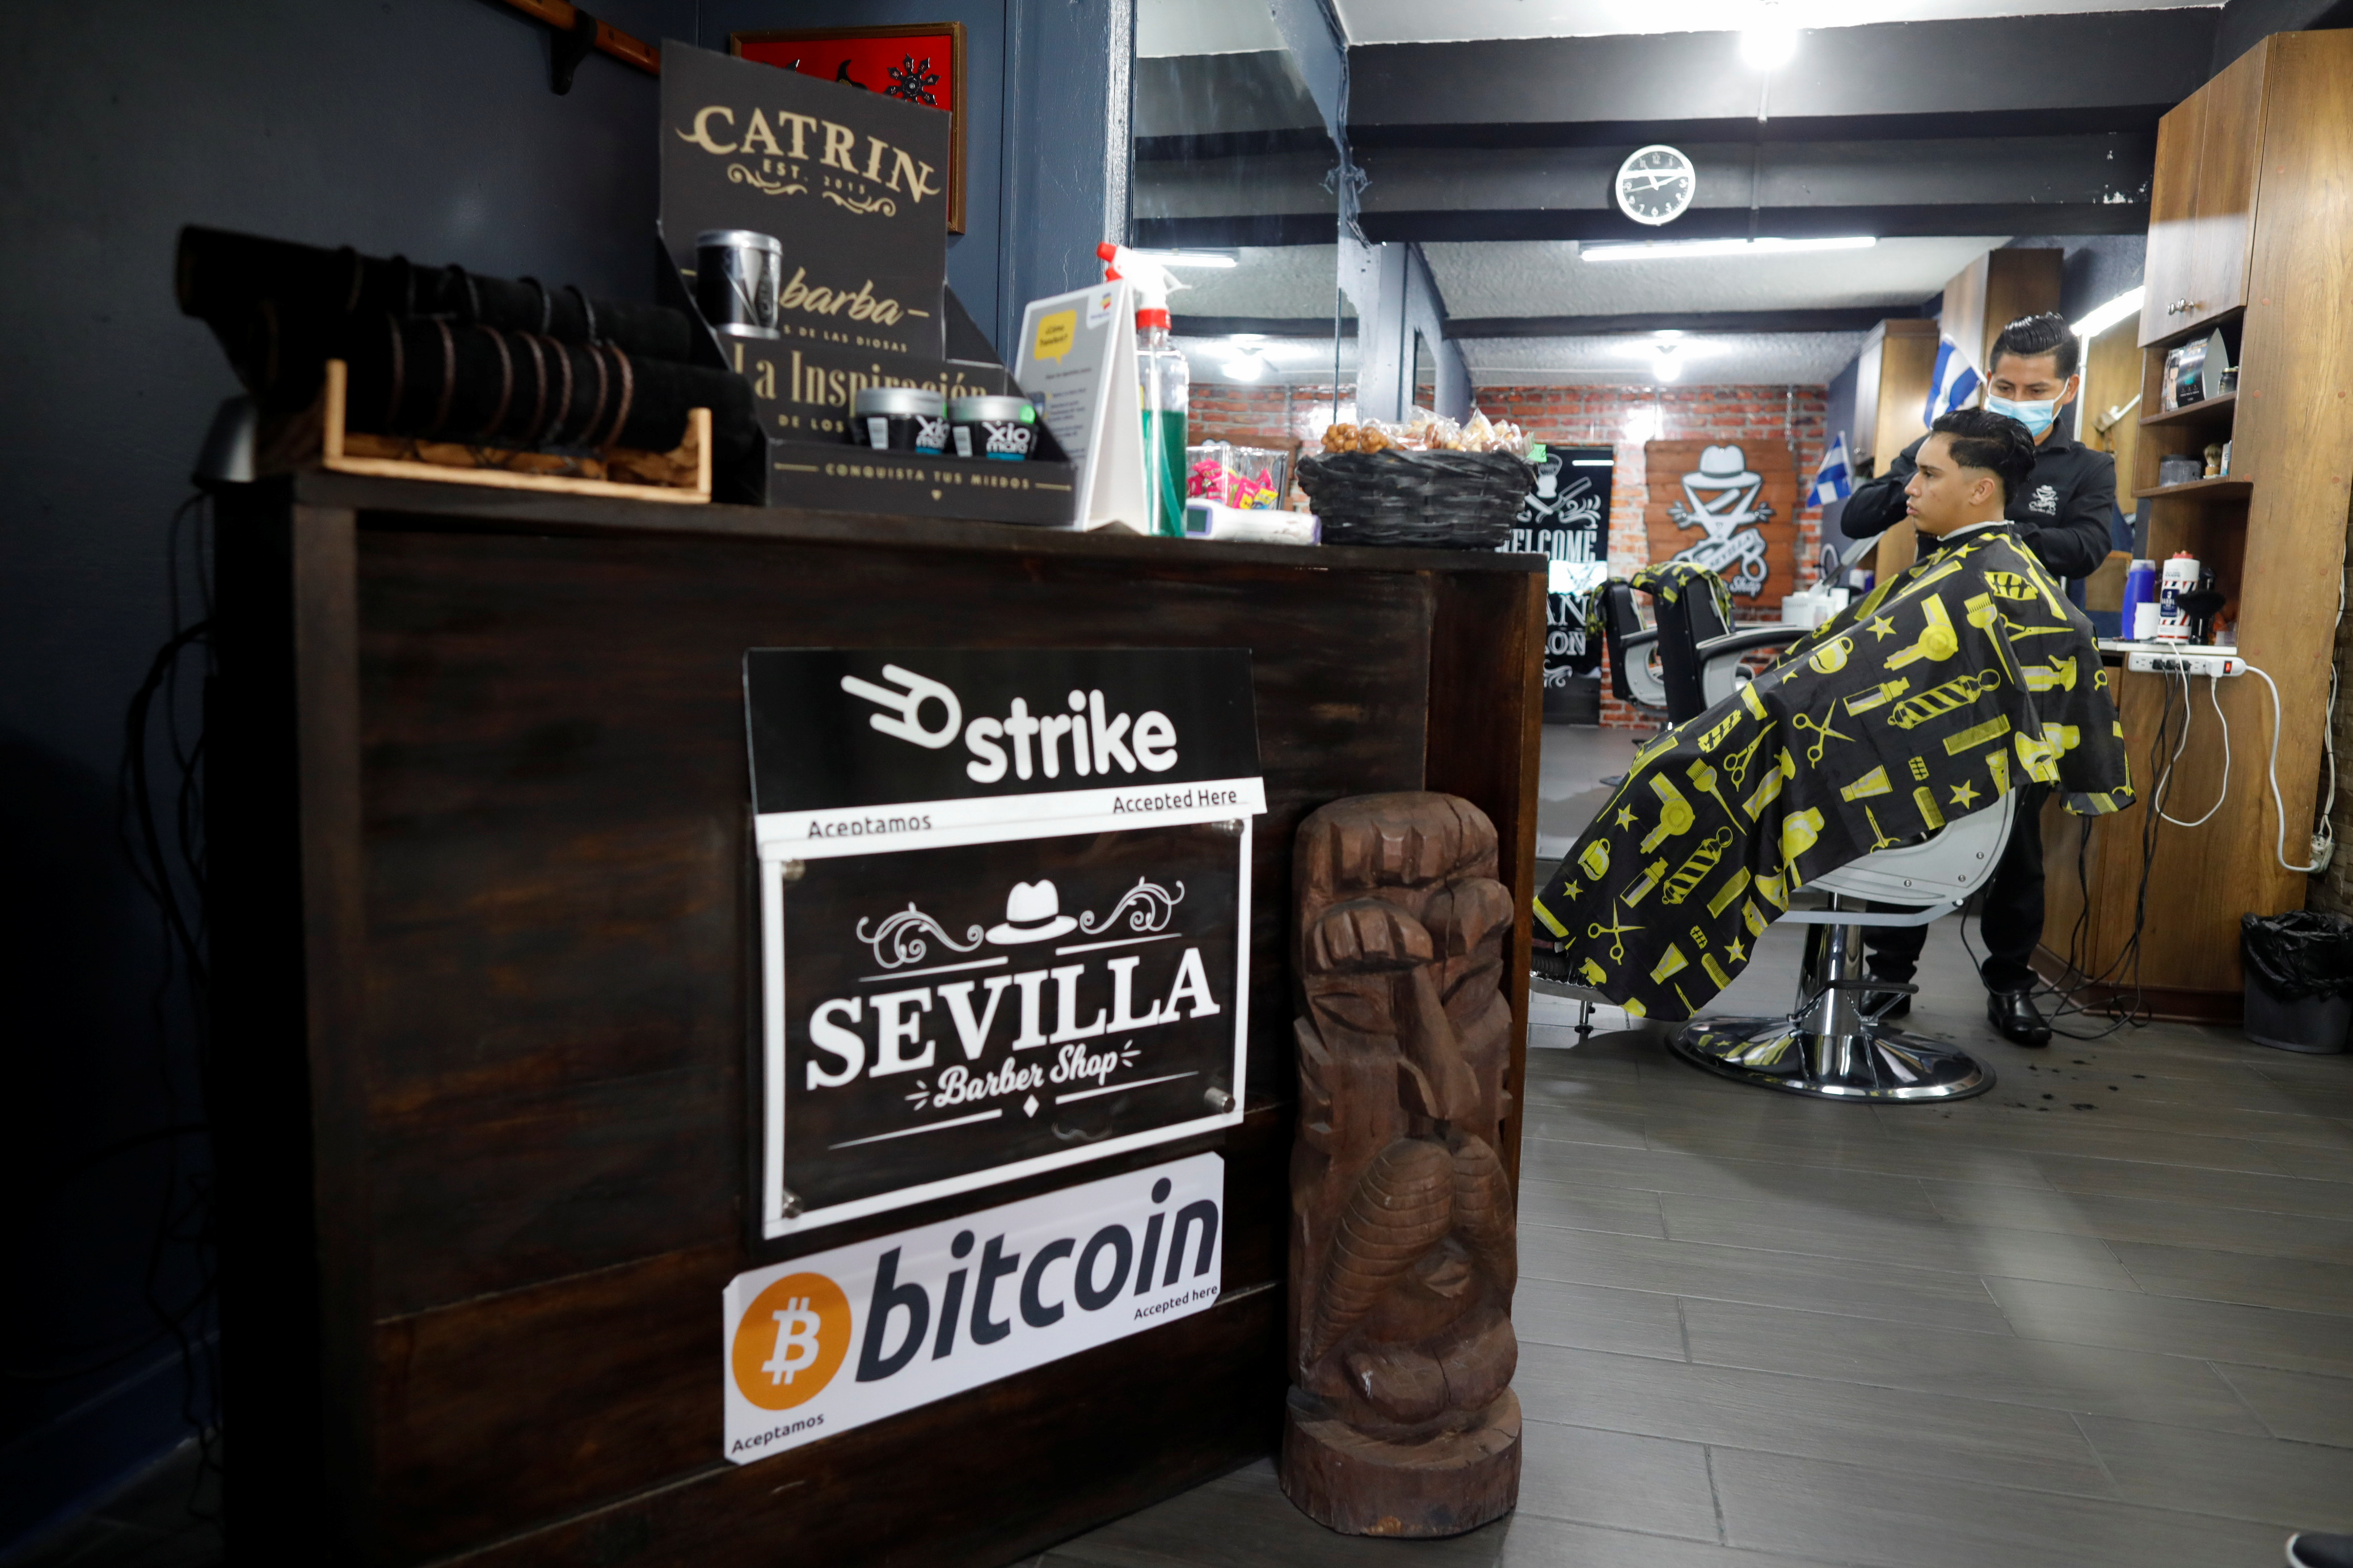 A barber works at Sevilla Barber Shop where Bitcoin is accepted as a payment method, in Santa Tecla, El Salvador September 6, 2021. REUTERS/Jose Cabezas